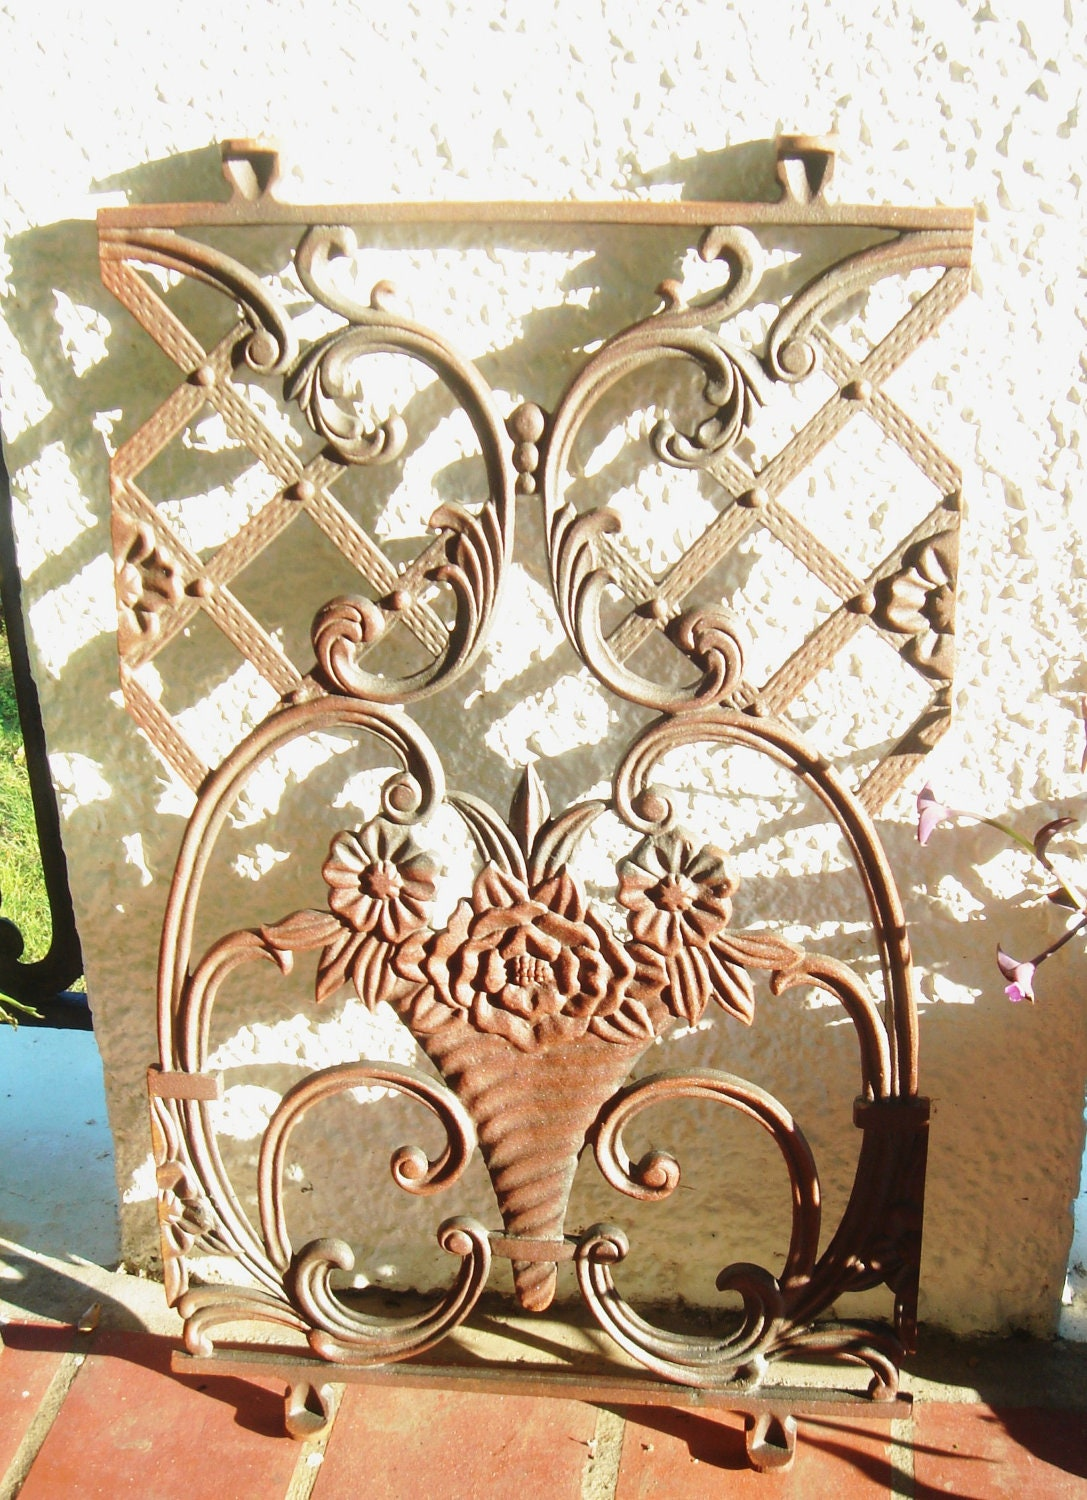 Cast Iron Lattice Flowers Vase Architectural by Theironsmith